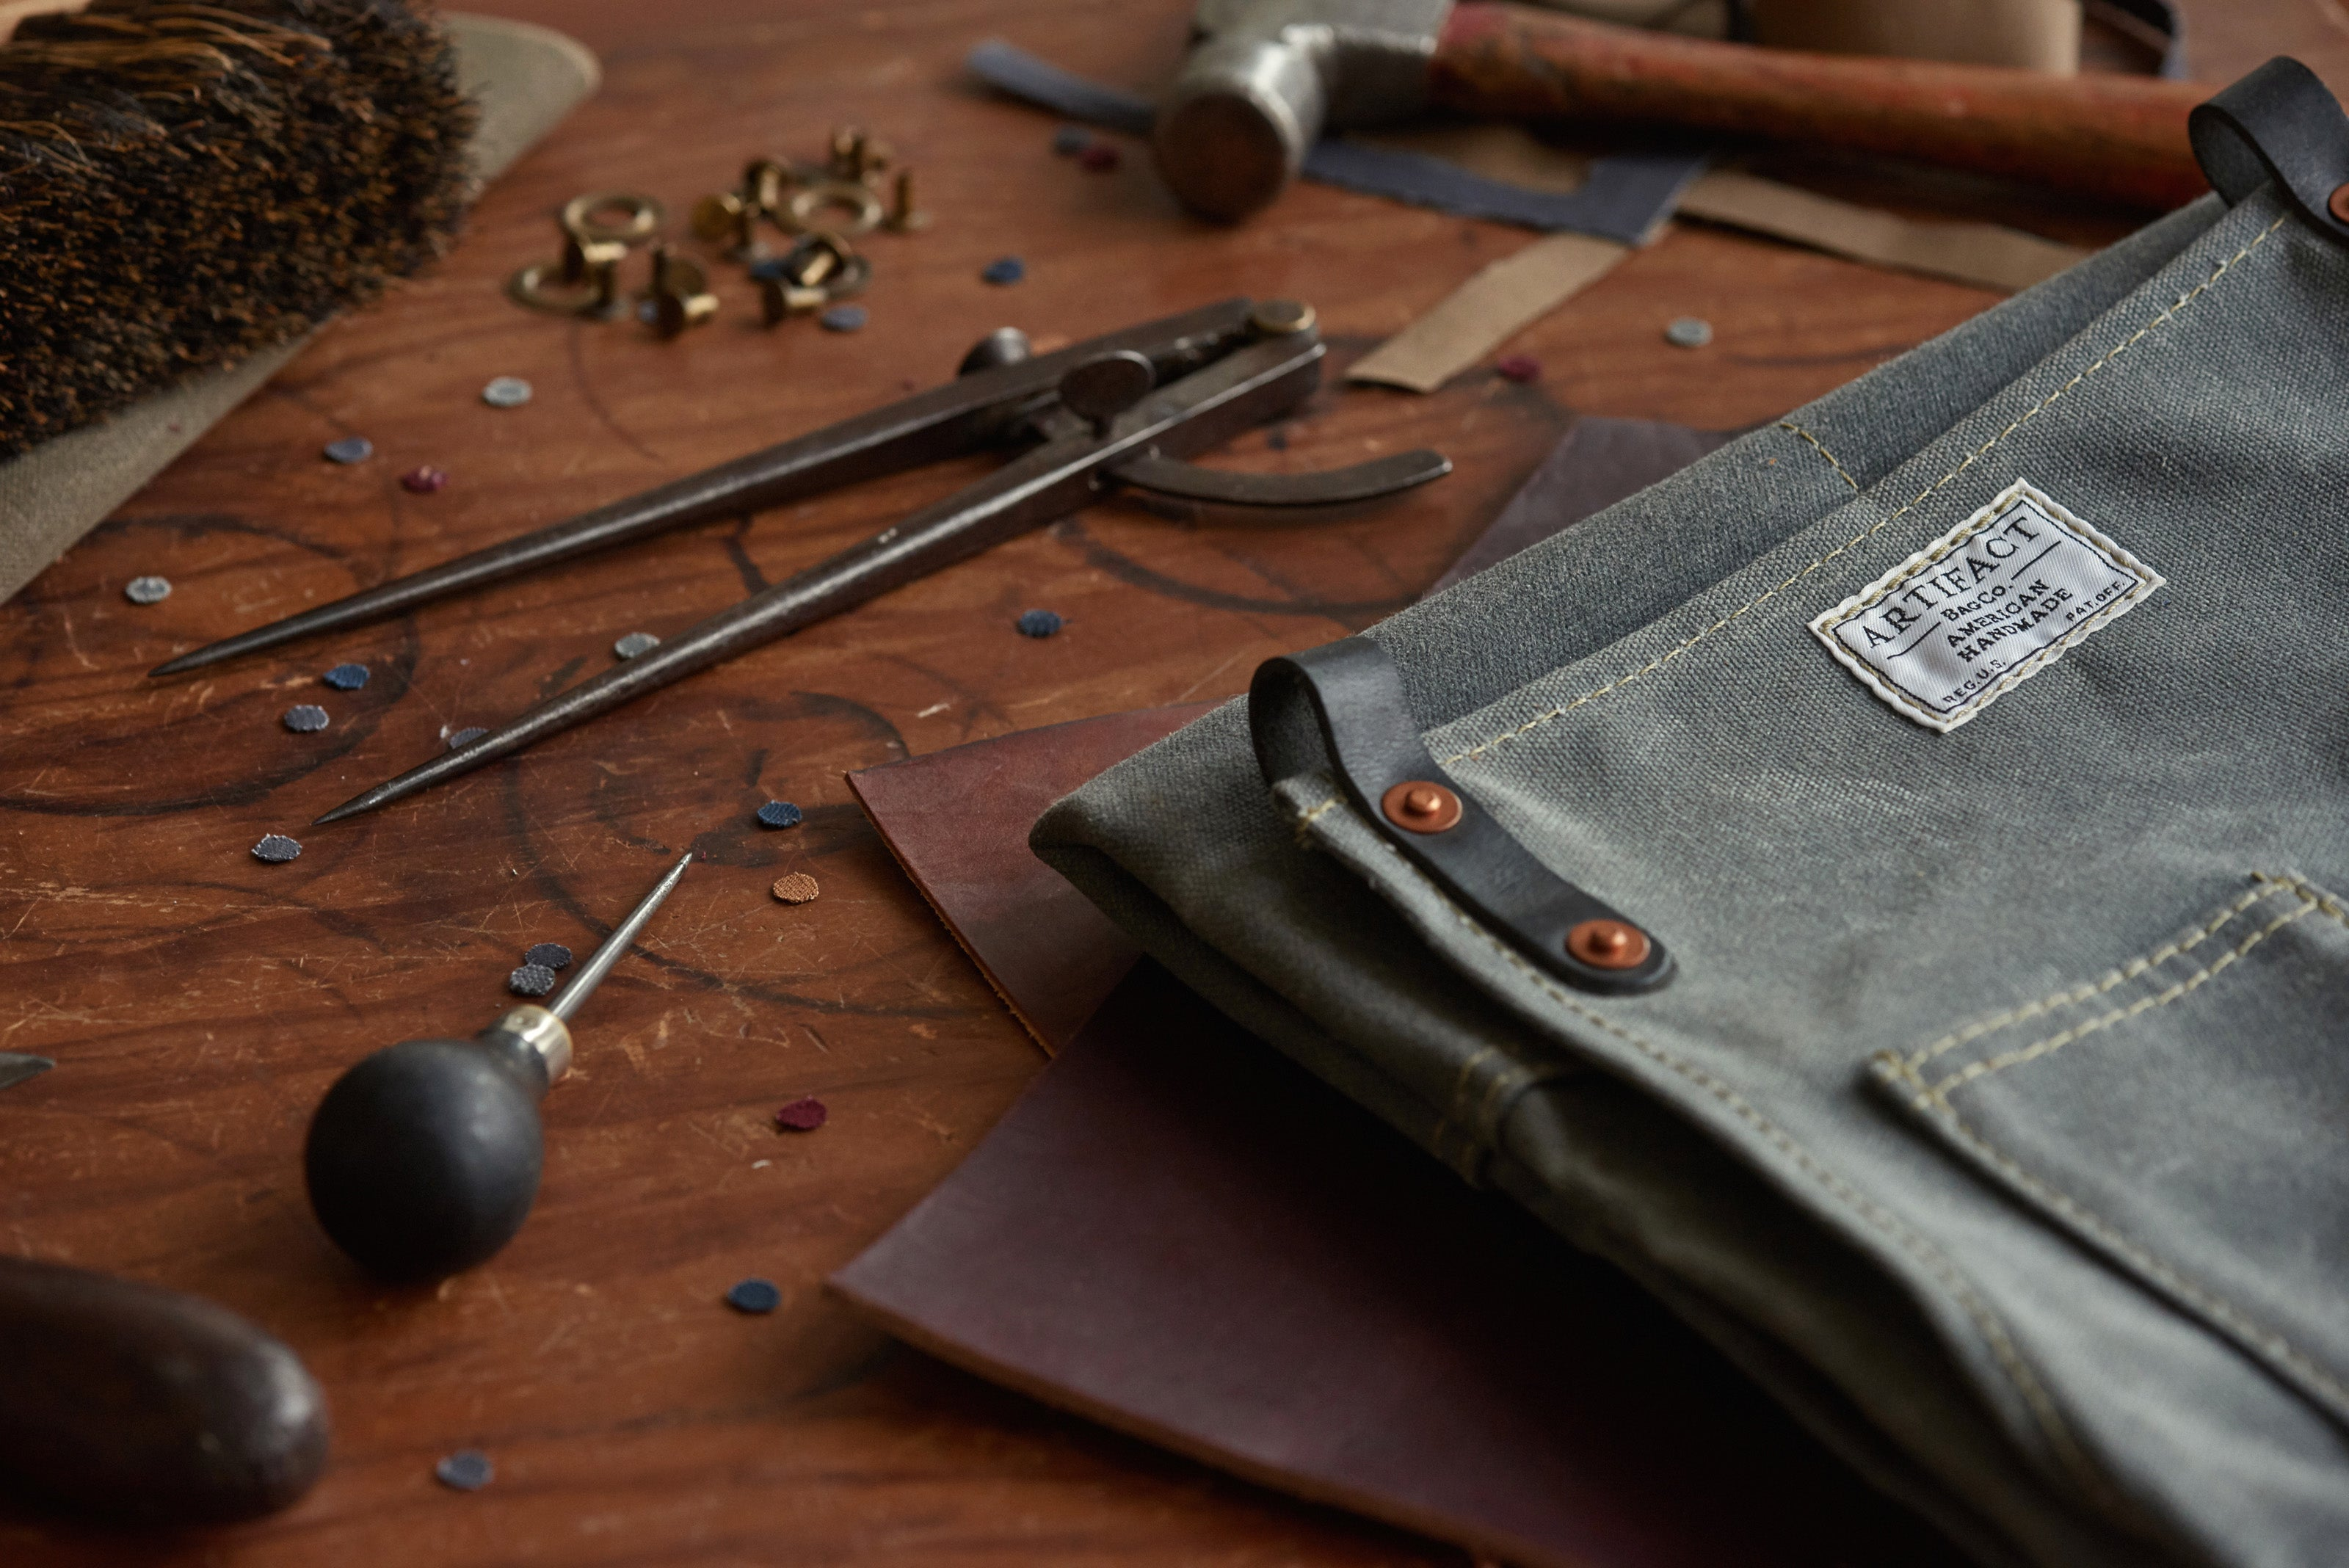 ARTIFACT Leather Strap Aprons